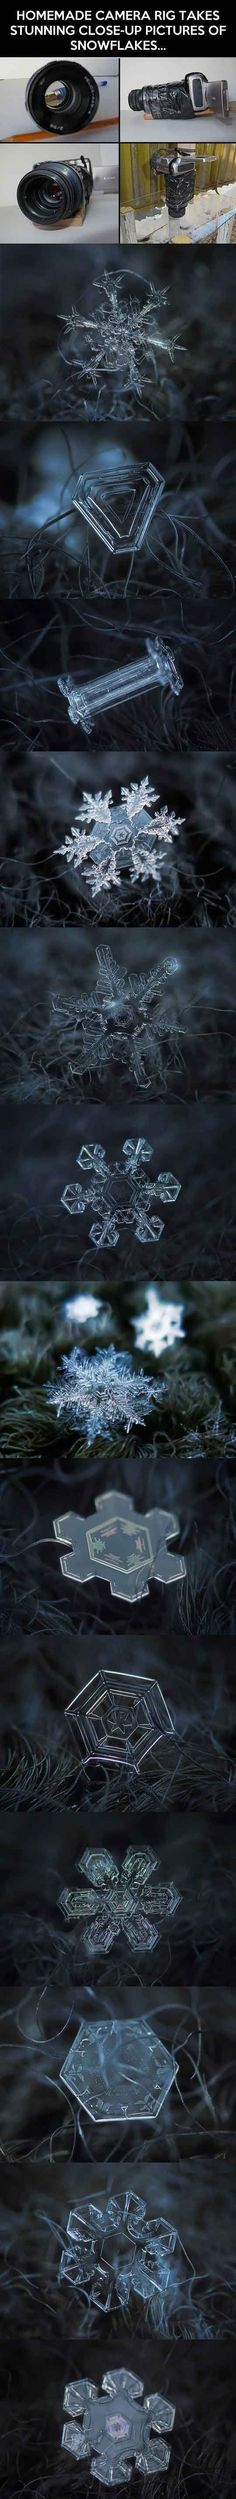 Homemade macro lens takes snowflake closeups. Cool.